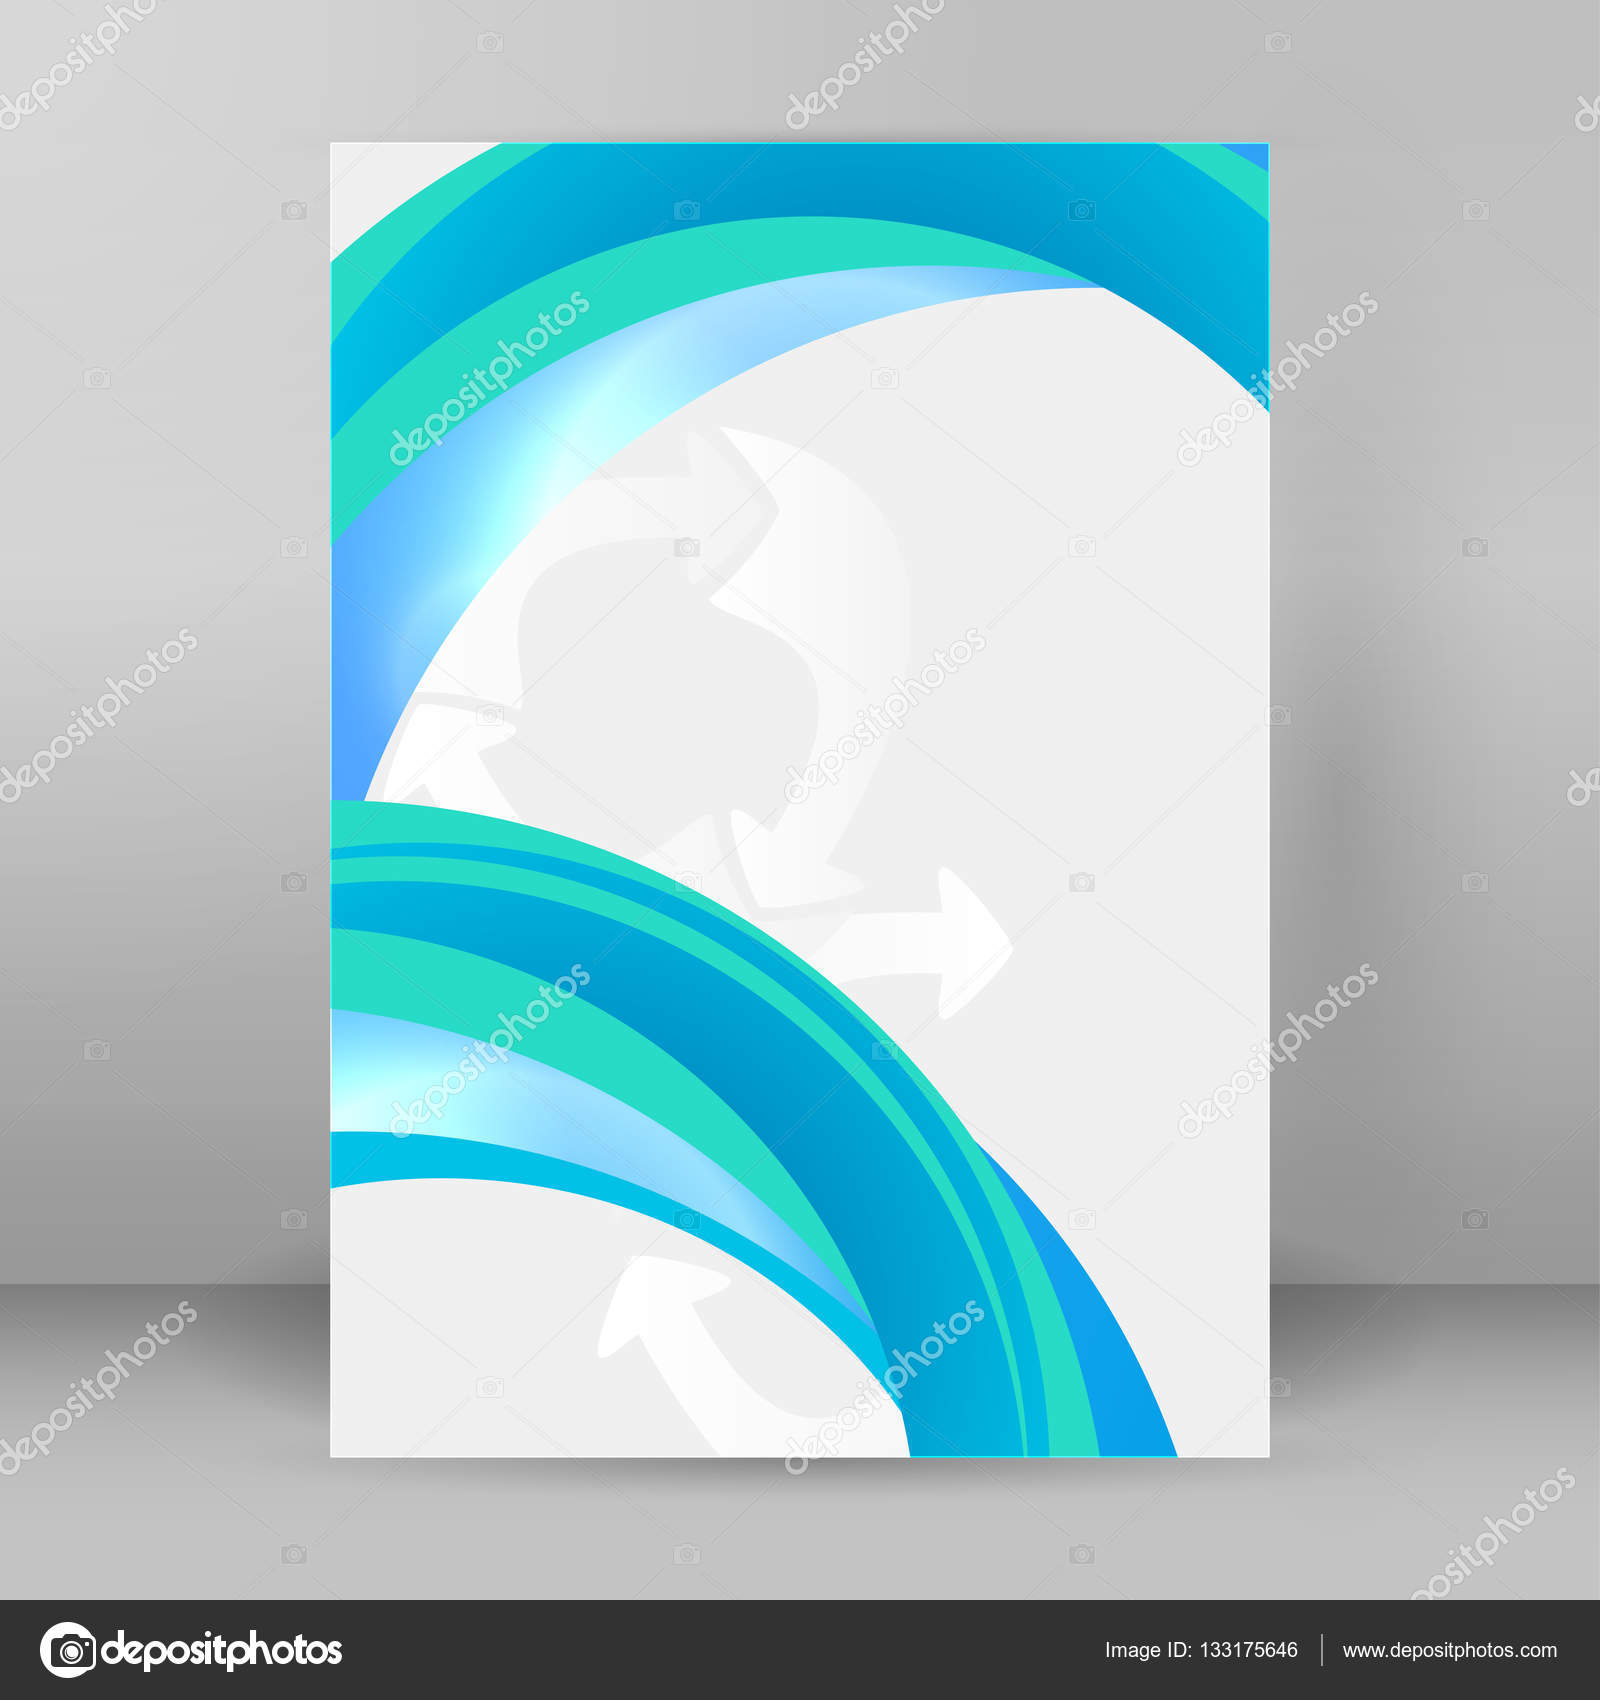 vector illustration eps 10 for business workflow layout web banner template page magazine brochure design elements vector by silvercircle